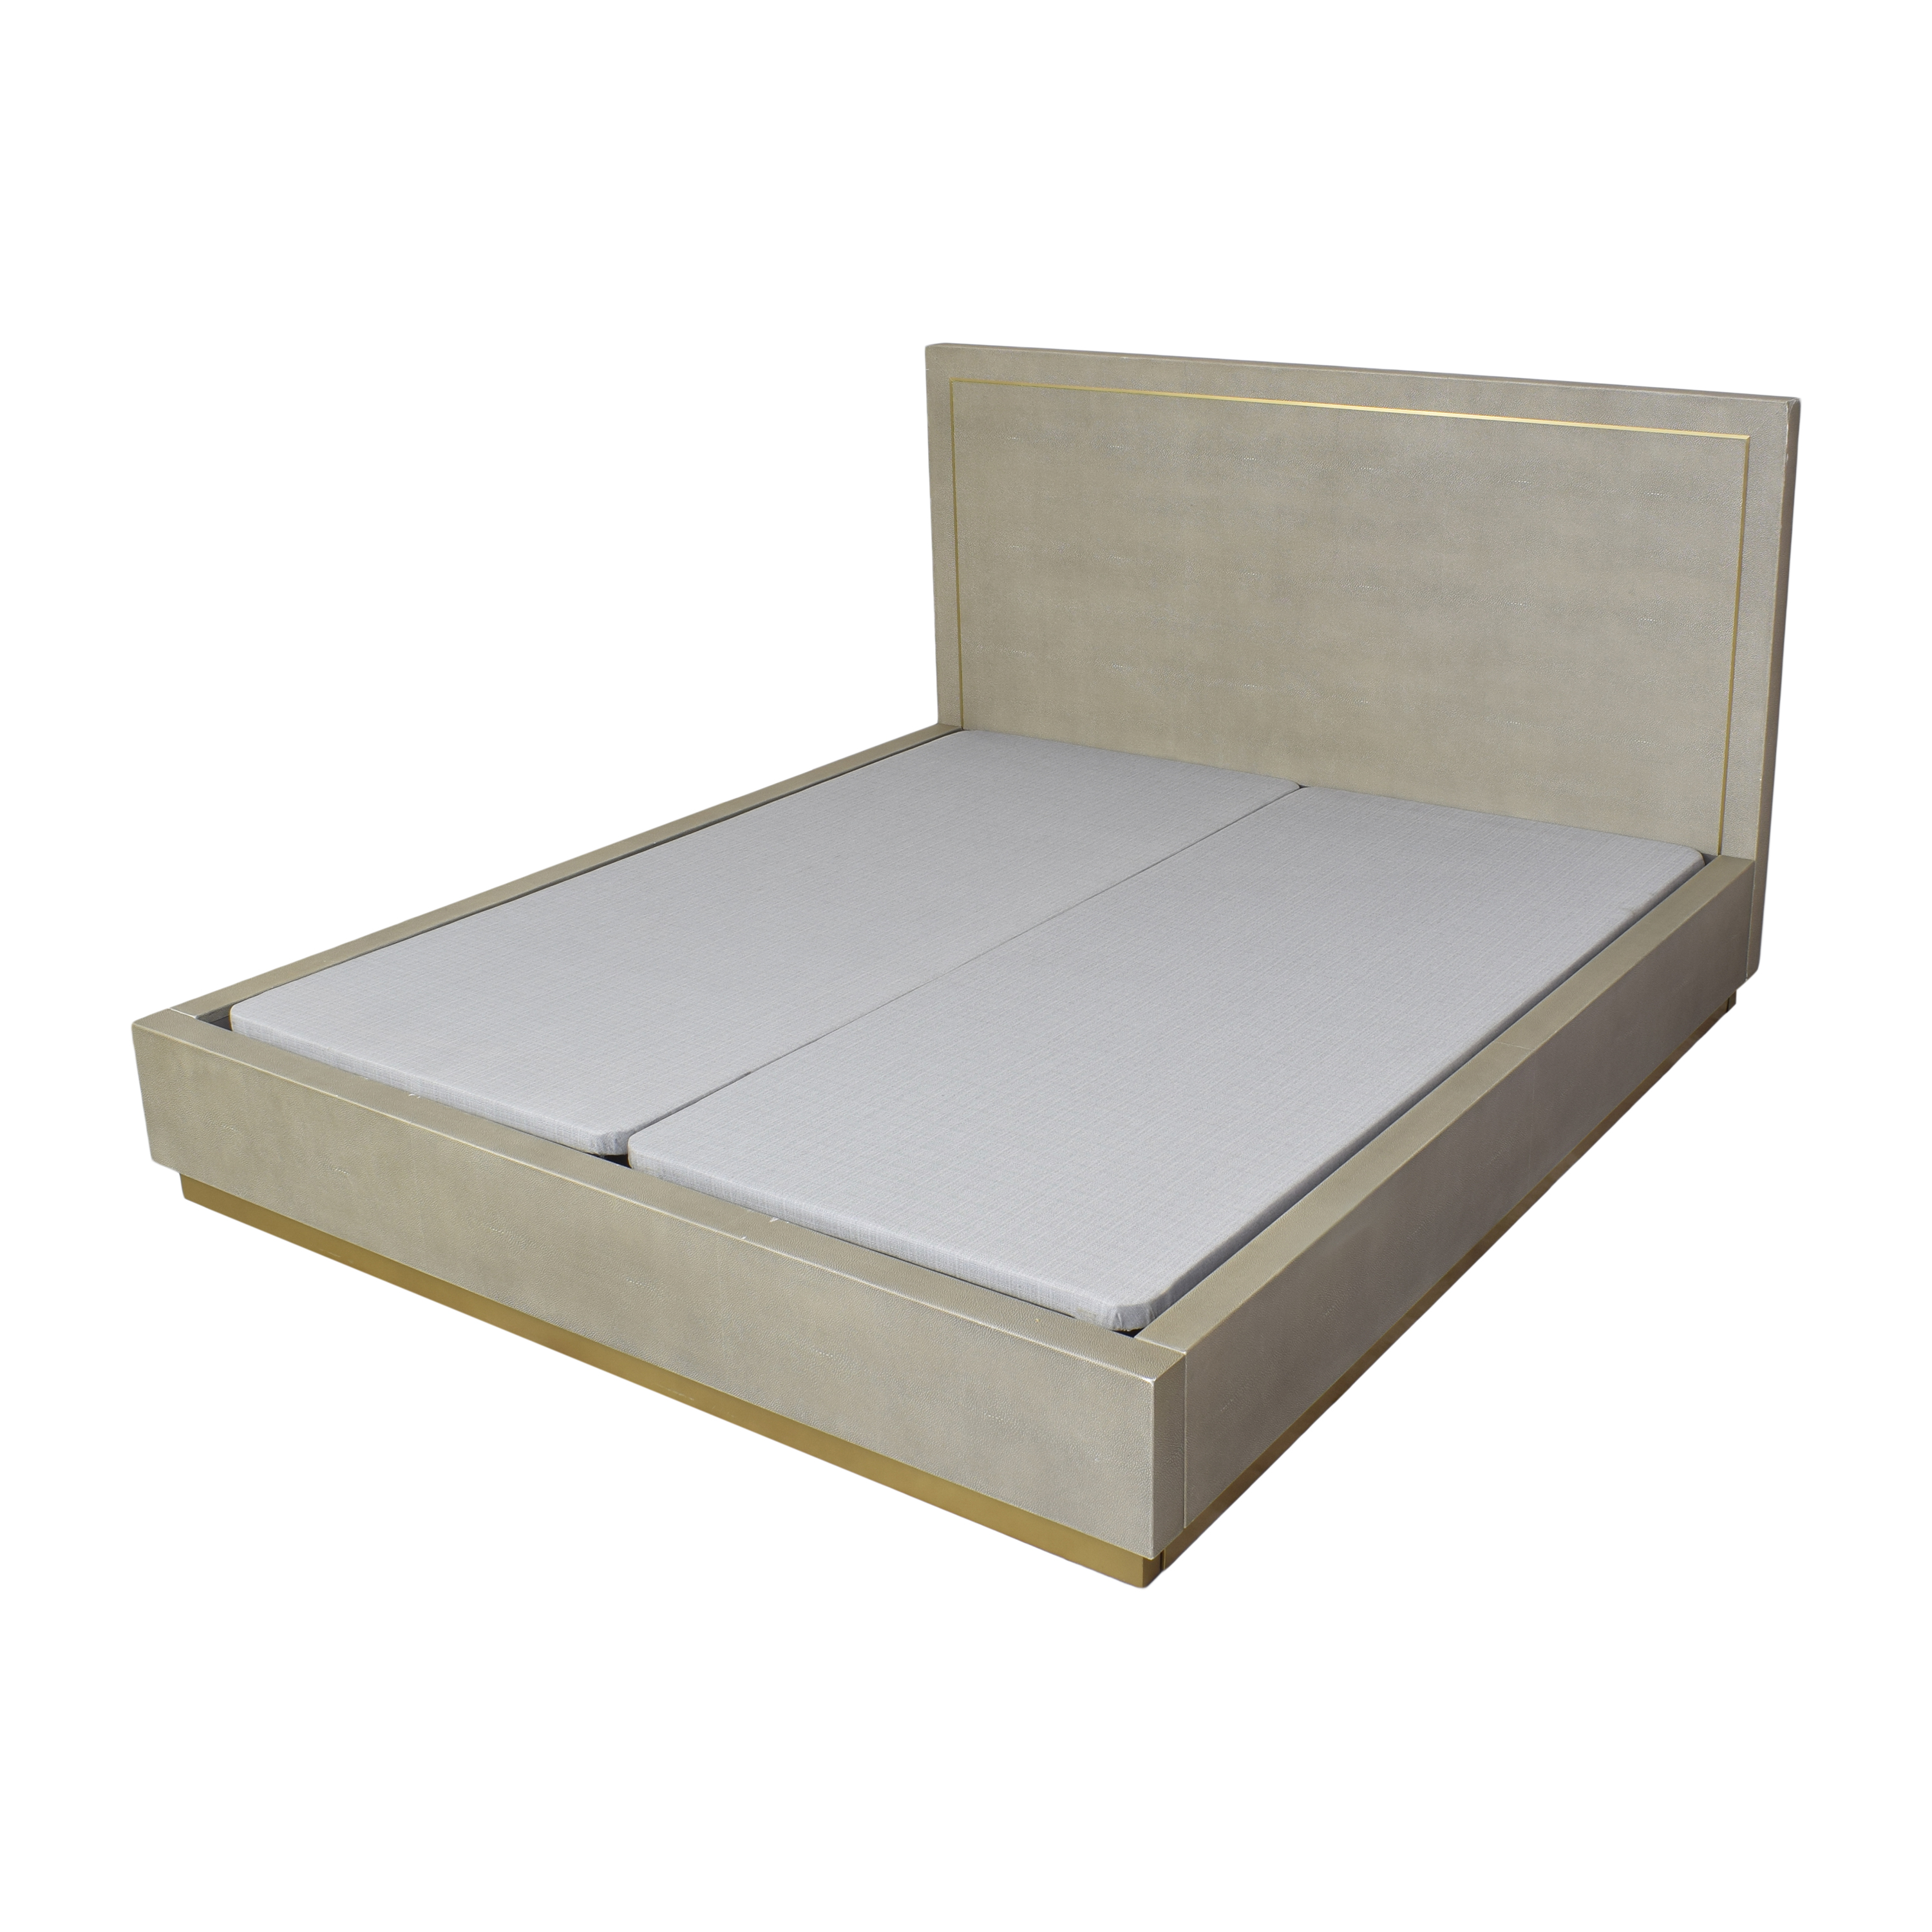 Restoration Hardware Restoration Hardware Cela California King Bed ma